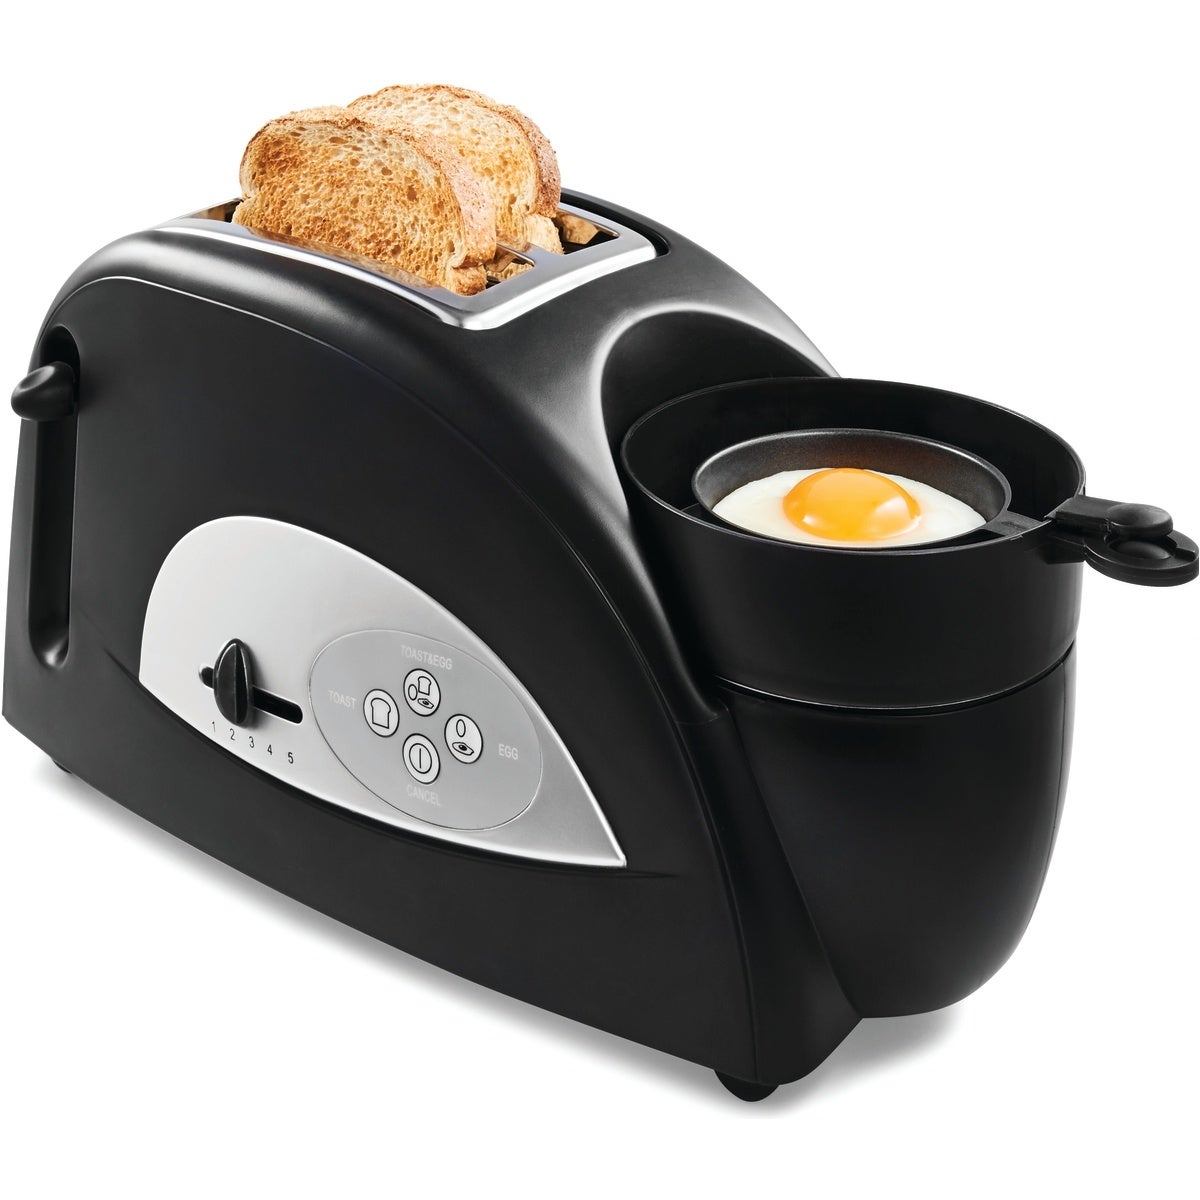 Kmart toast and egg cooker